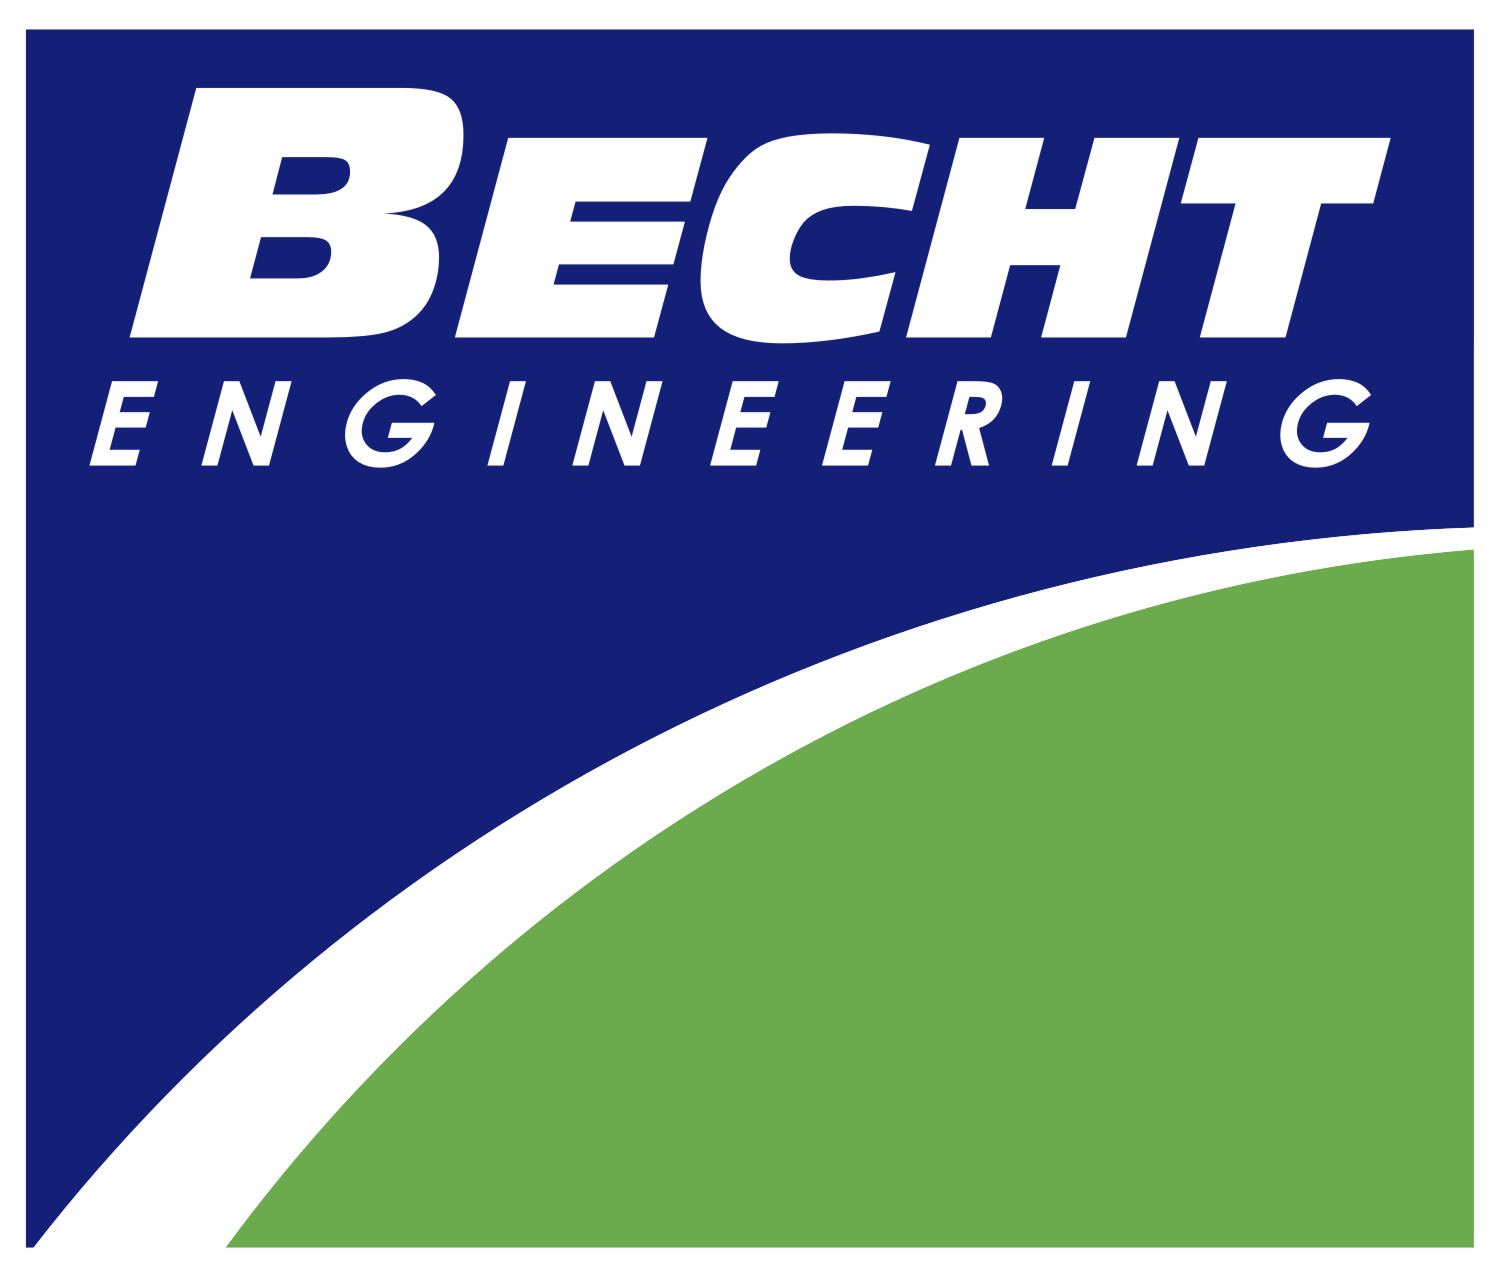 Becht Engineering Announces Acquisition of Dynamic Performance Management to Bring Greater SME Knowledge and Proven Resource Management to the Refining, Petrochemical and Power Generation Industries